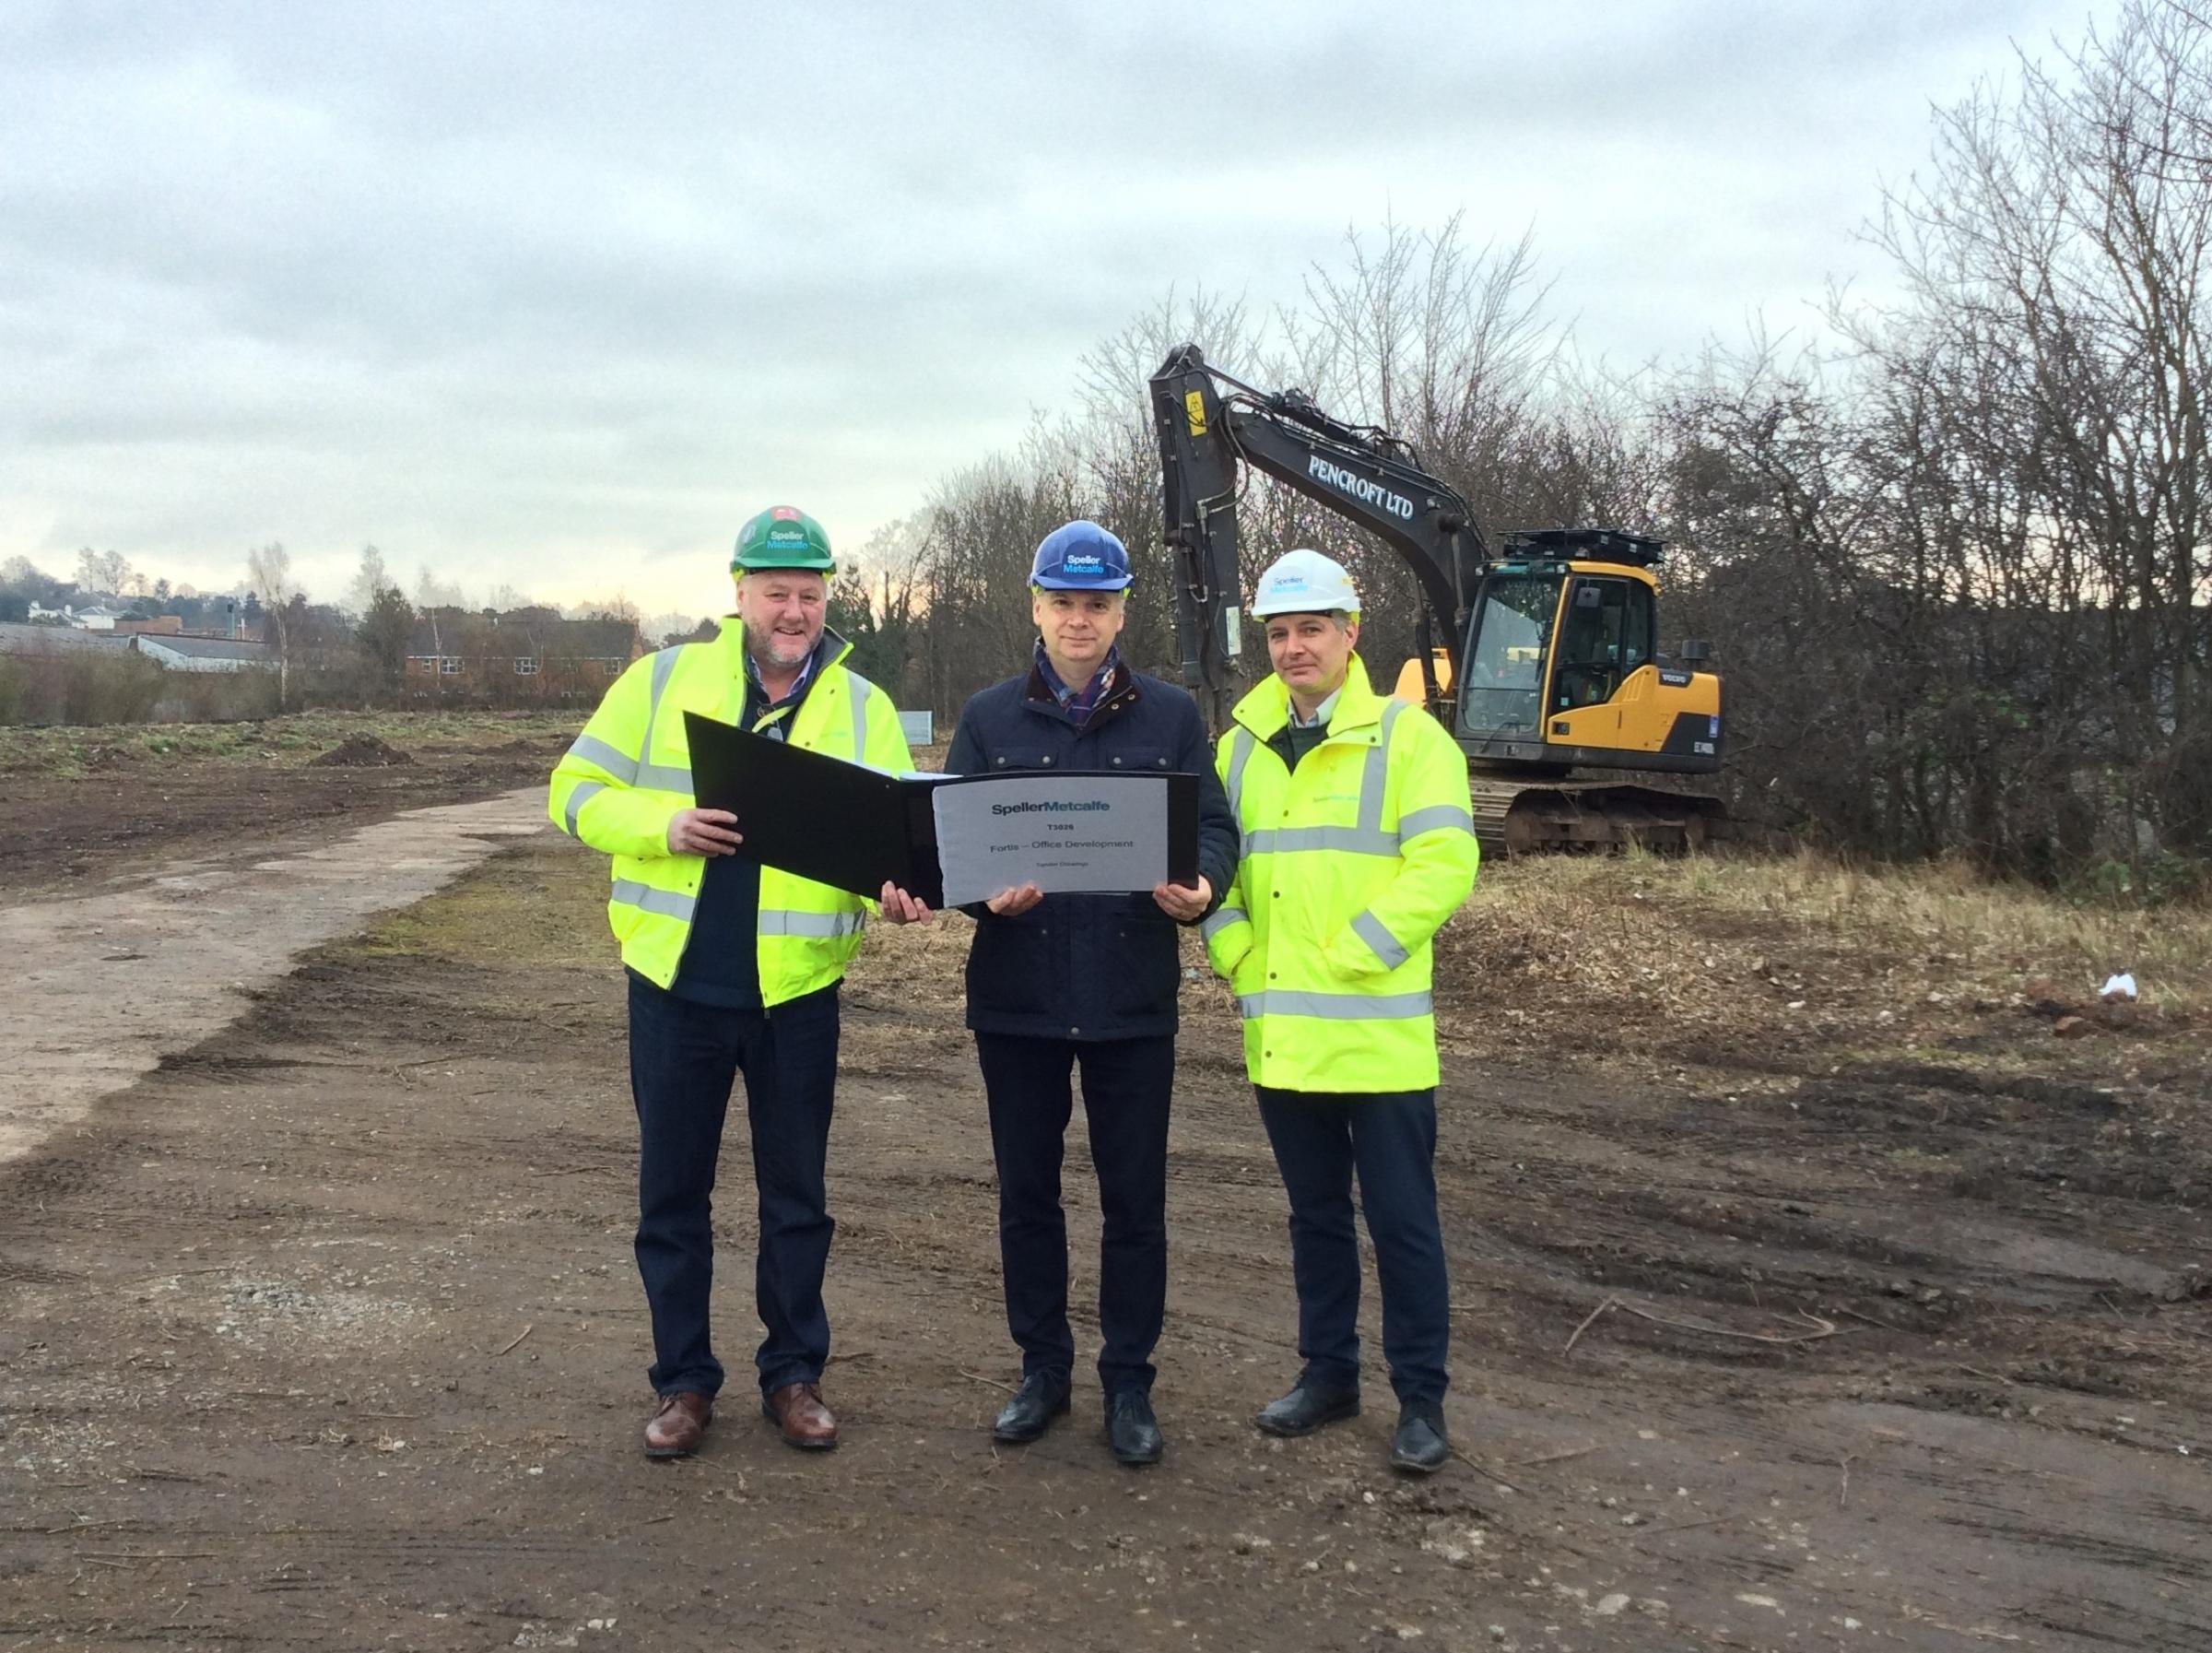 UNDERWAY:Barry Woodhall, Site Manager from Speller Metcalfe, Richard Grounds, Executive Director of Growth and Investment at Fortis Living and Simon Holdsworth, Contract Manager at Speller Metcalfe, on the site of the new Fortis Living office development